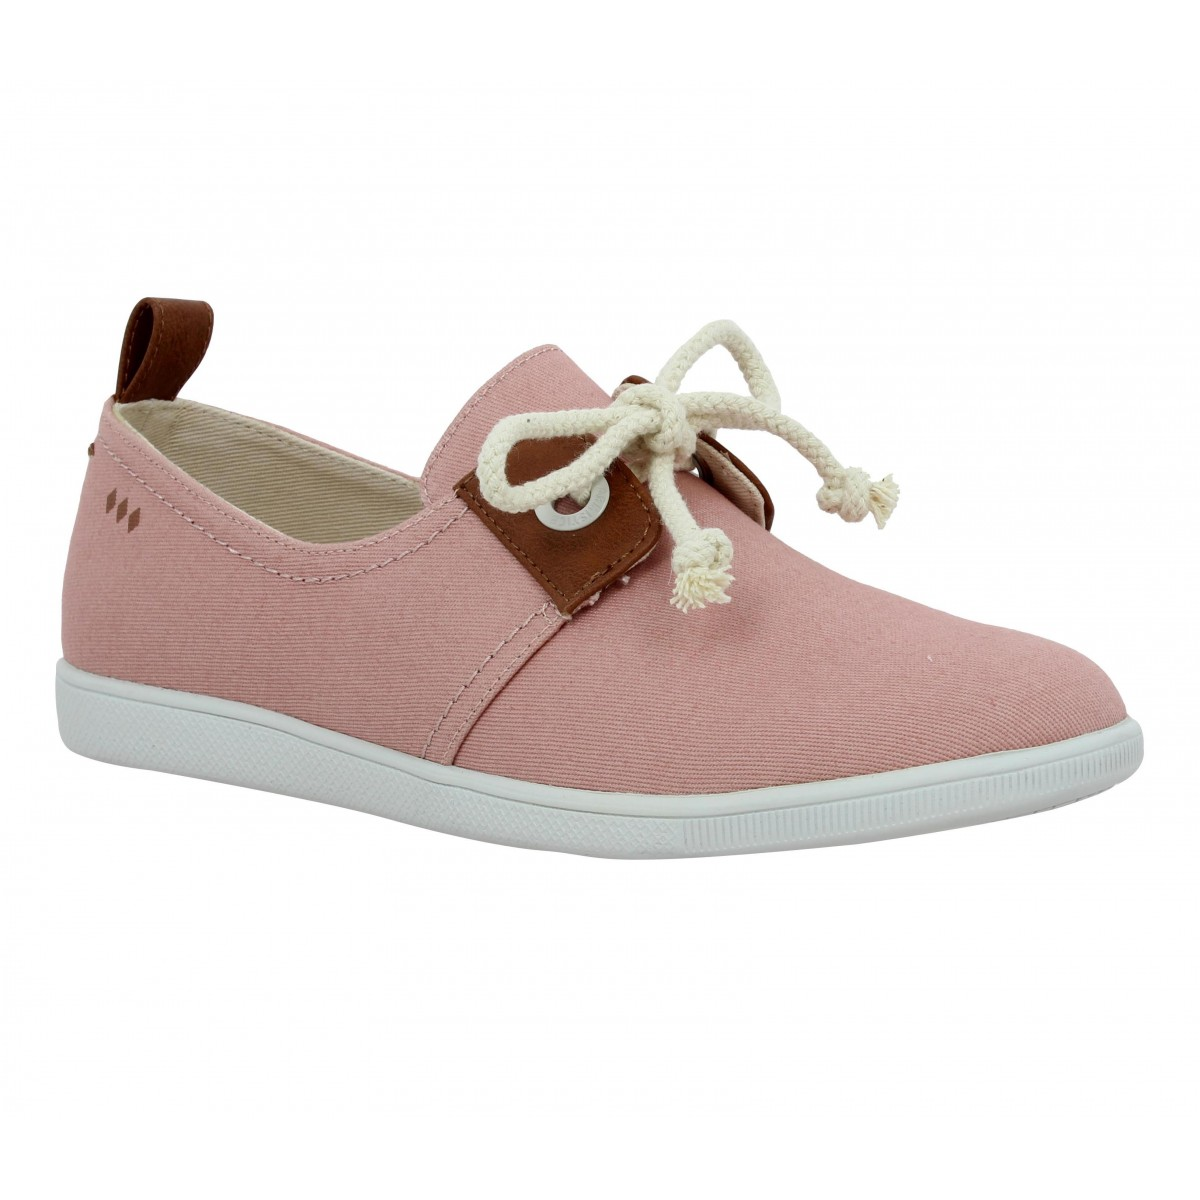 Armistice Stone One Toile Femme Dragee Fanny Chaussures